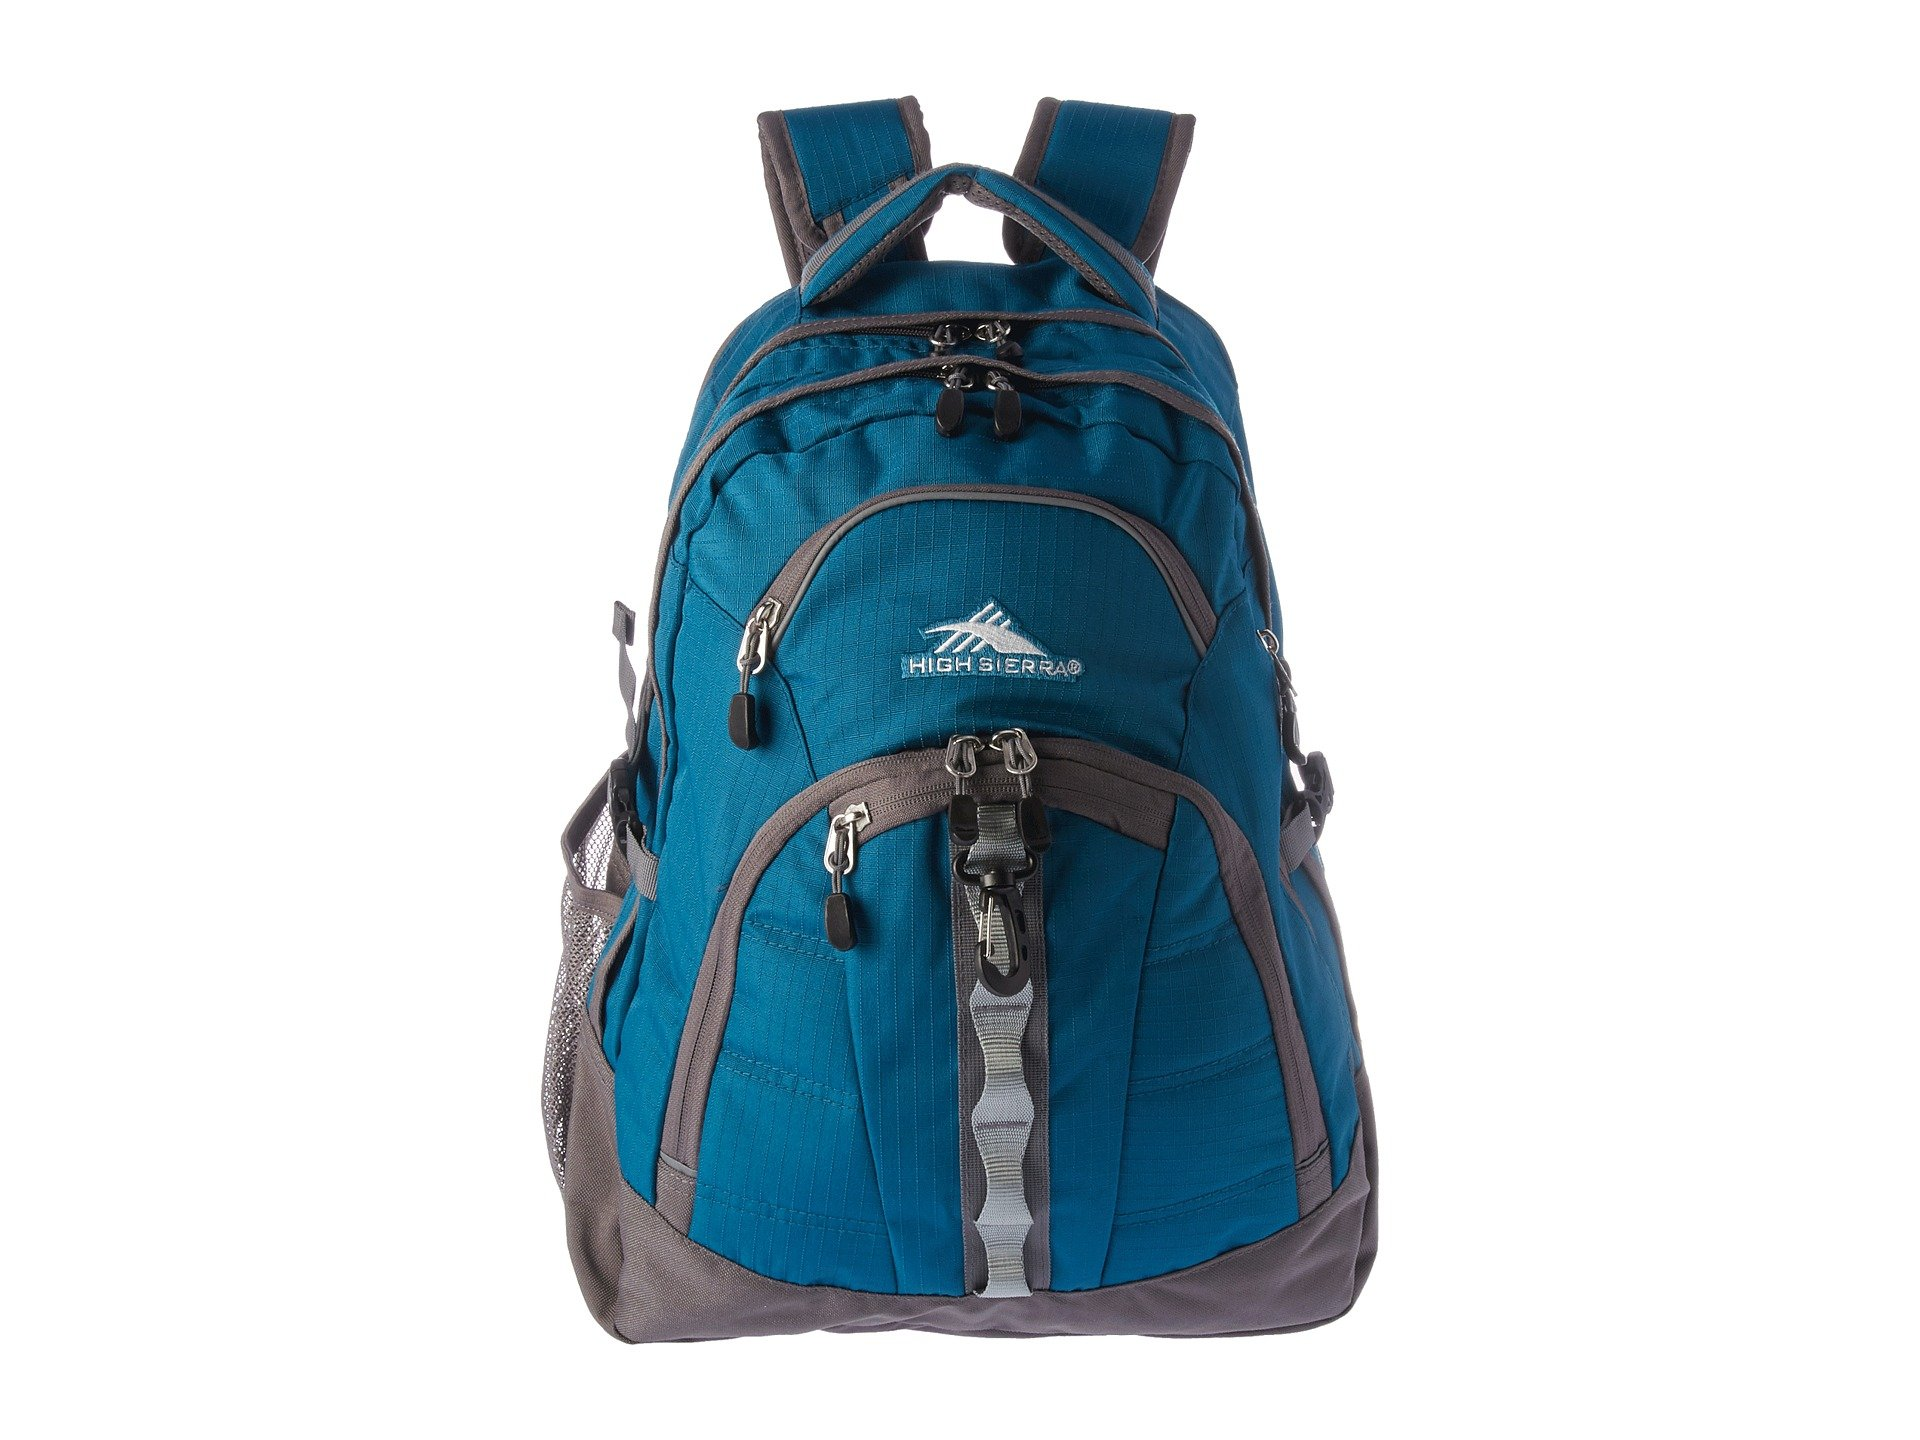 High Sierra Access 2.0 Laptop Backpack - 15-inch Laptop Backpack by High Sierra